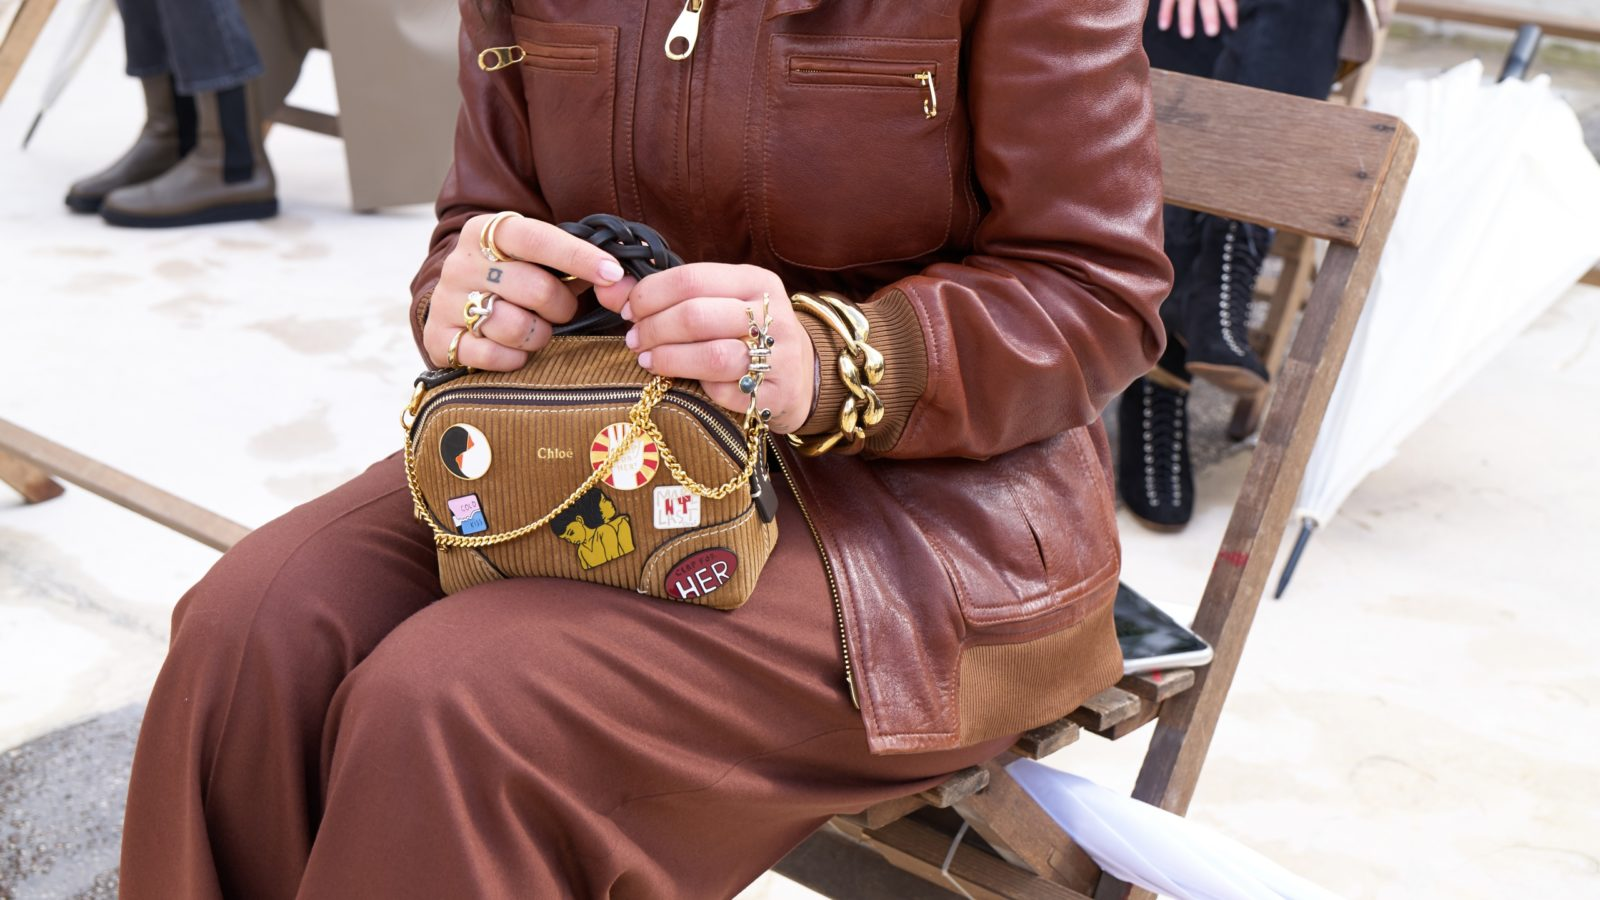 The biggest handbag trends to carry into 2021